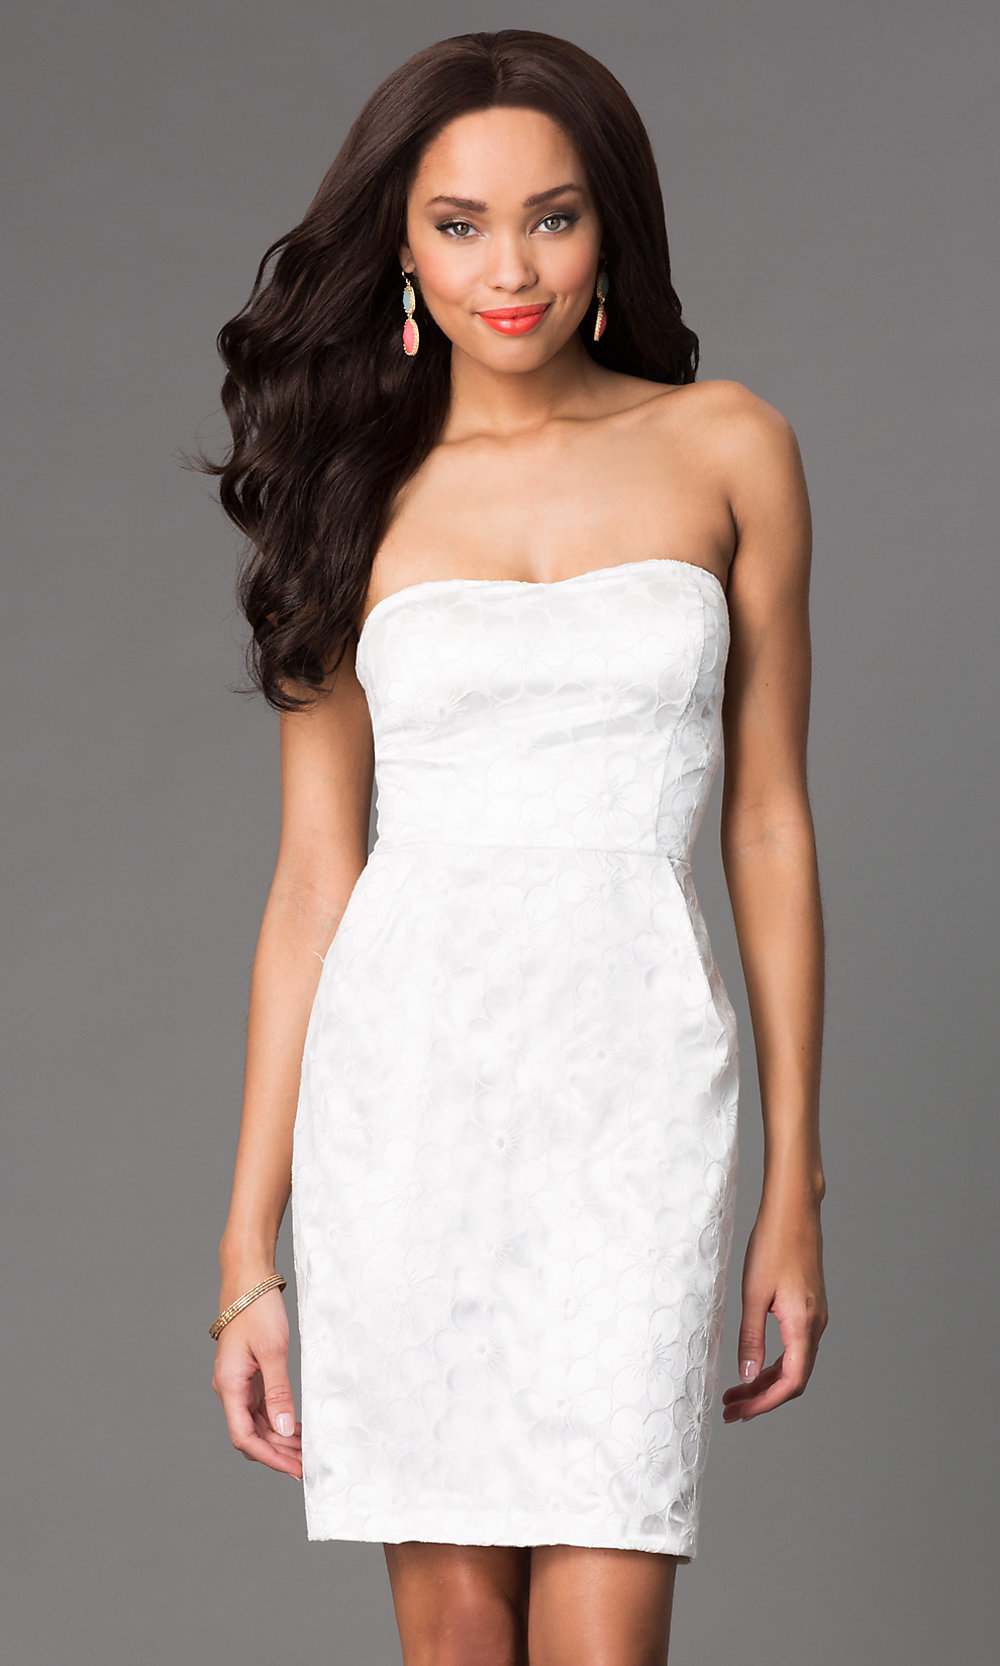 hair with strapless dress